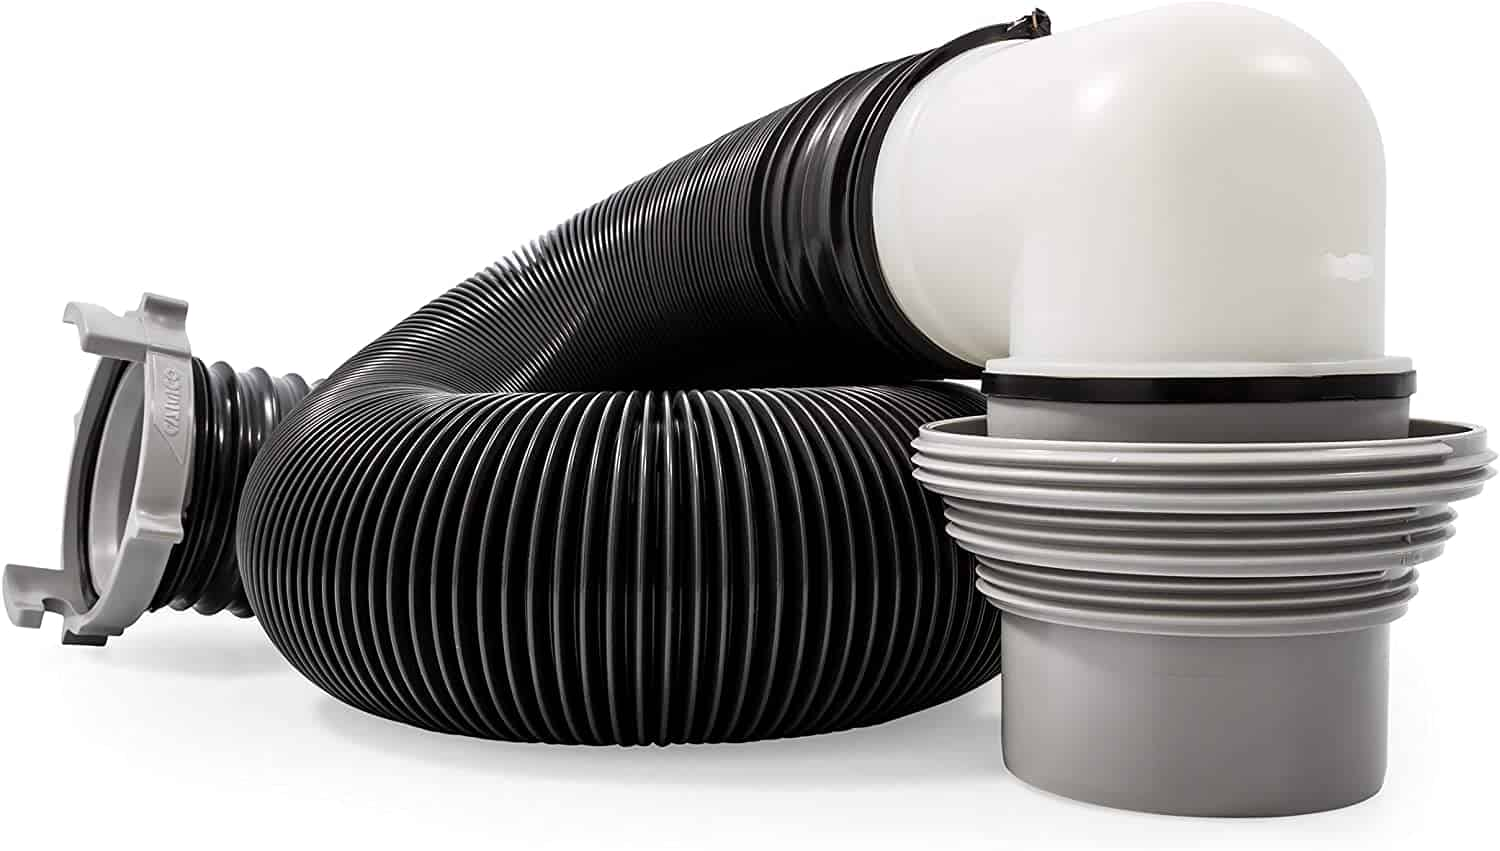 Camco 39551 Complete RV Sewer Pack